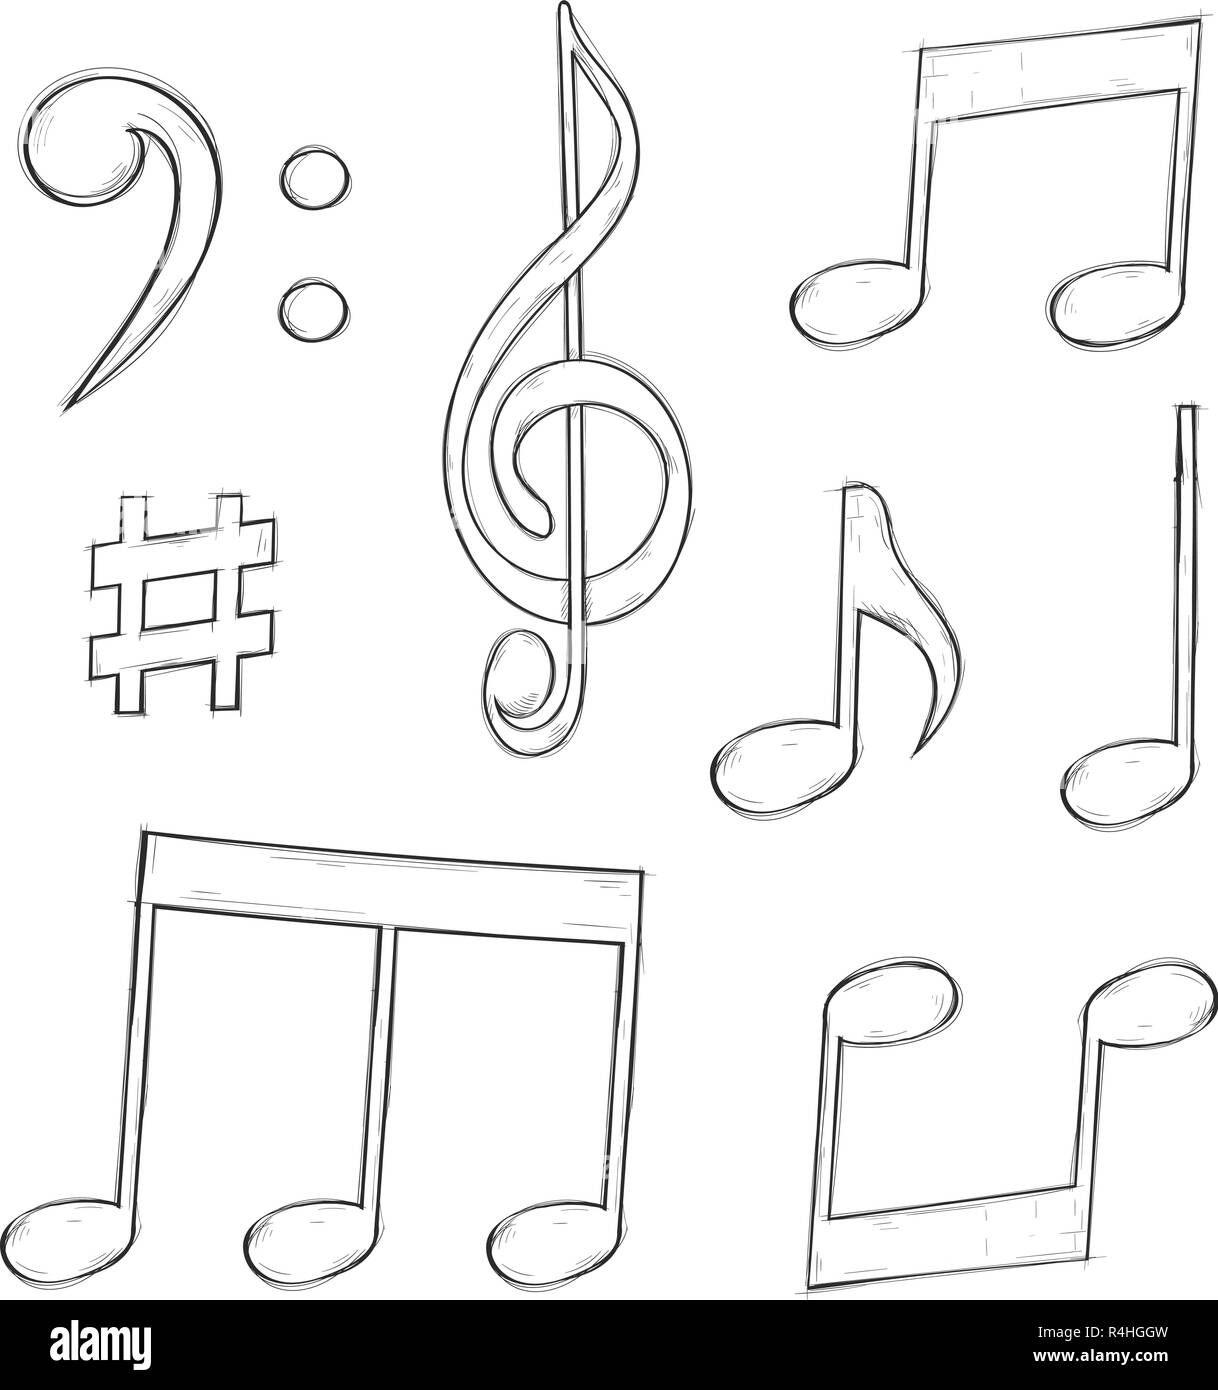 Music signs notes and symbols isolated on white background